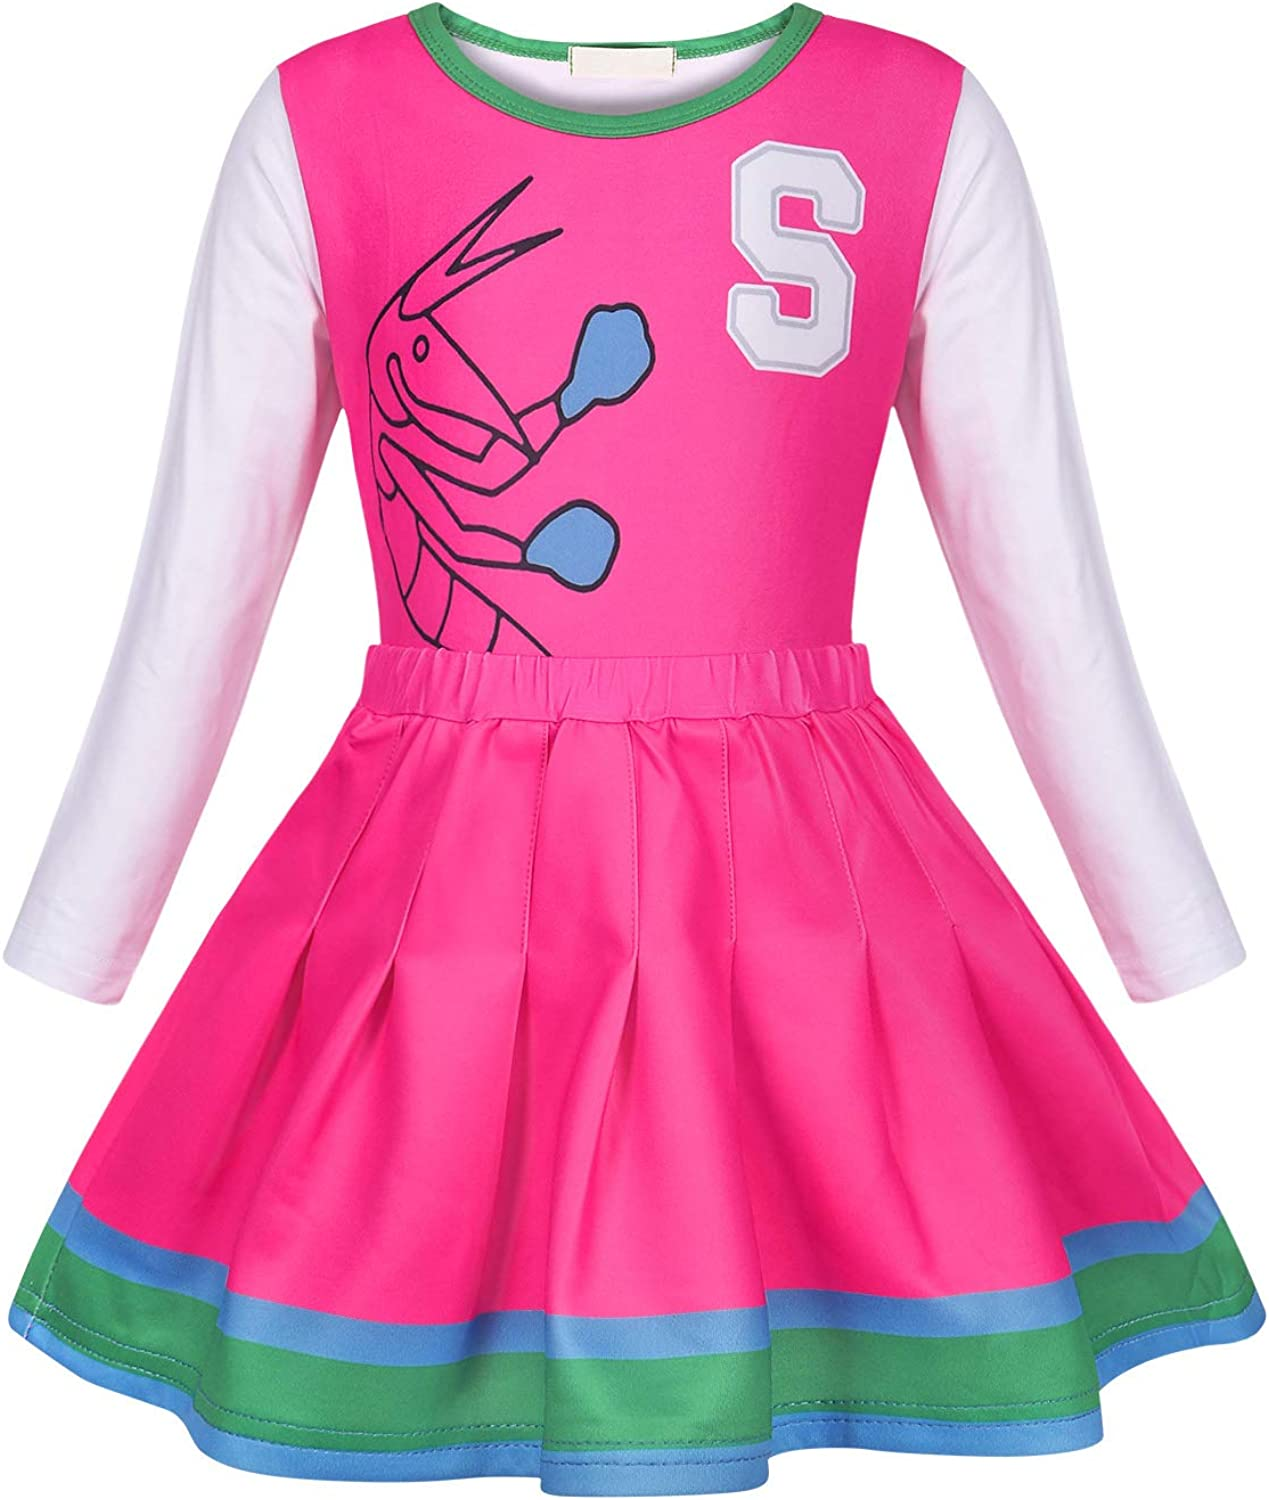 MetCuento Cheerleader Costume for Girls Kids Role Play for Party Dress up Halloween Performance Outfit Pom Poms Hair Rope